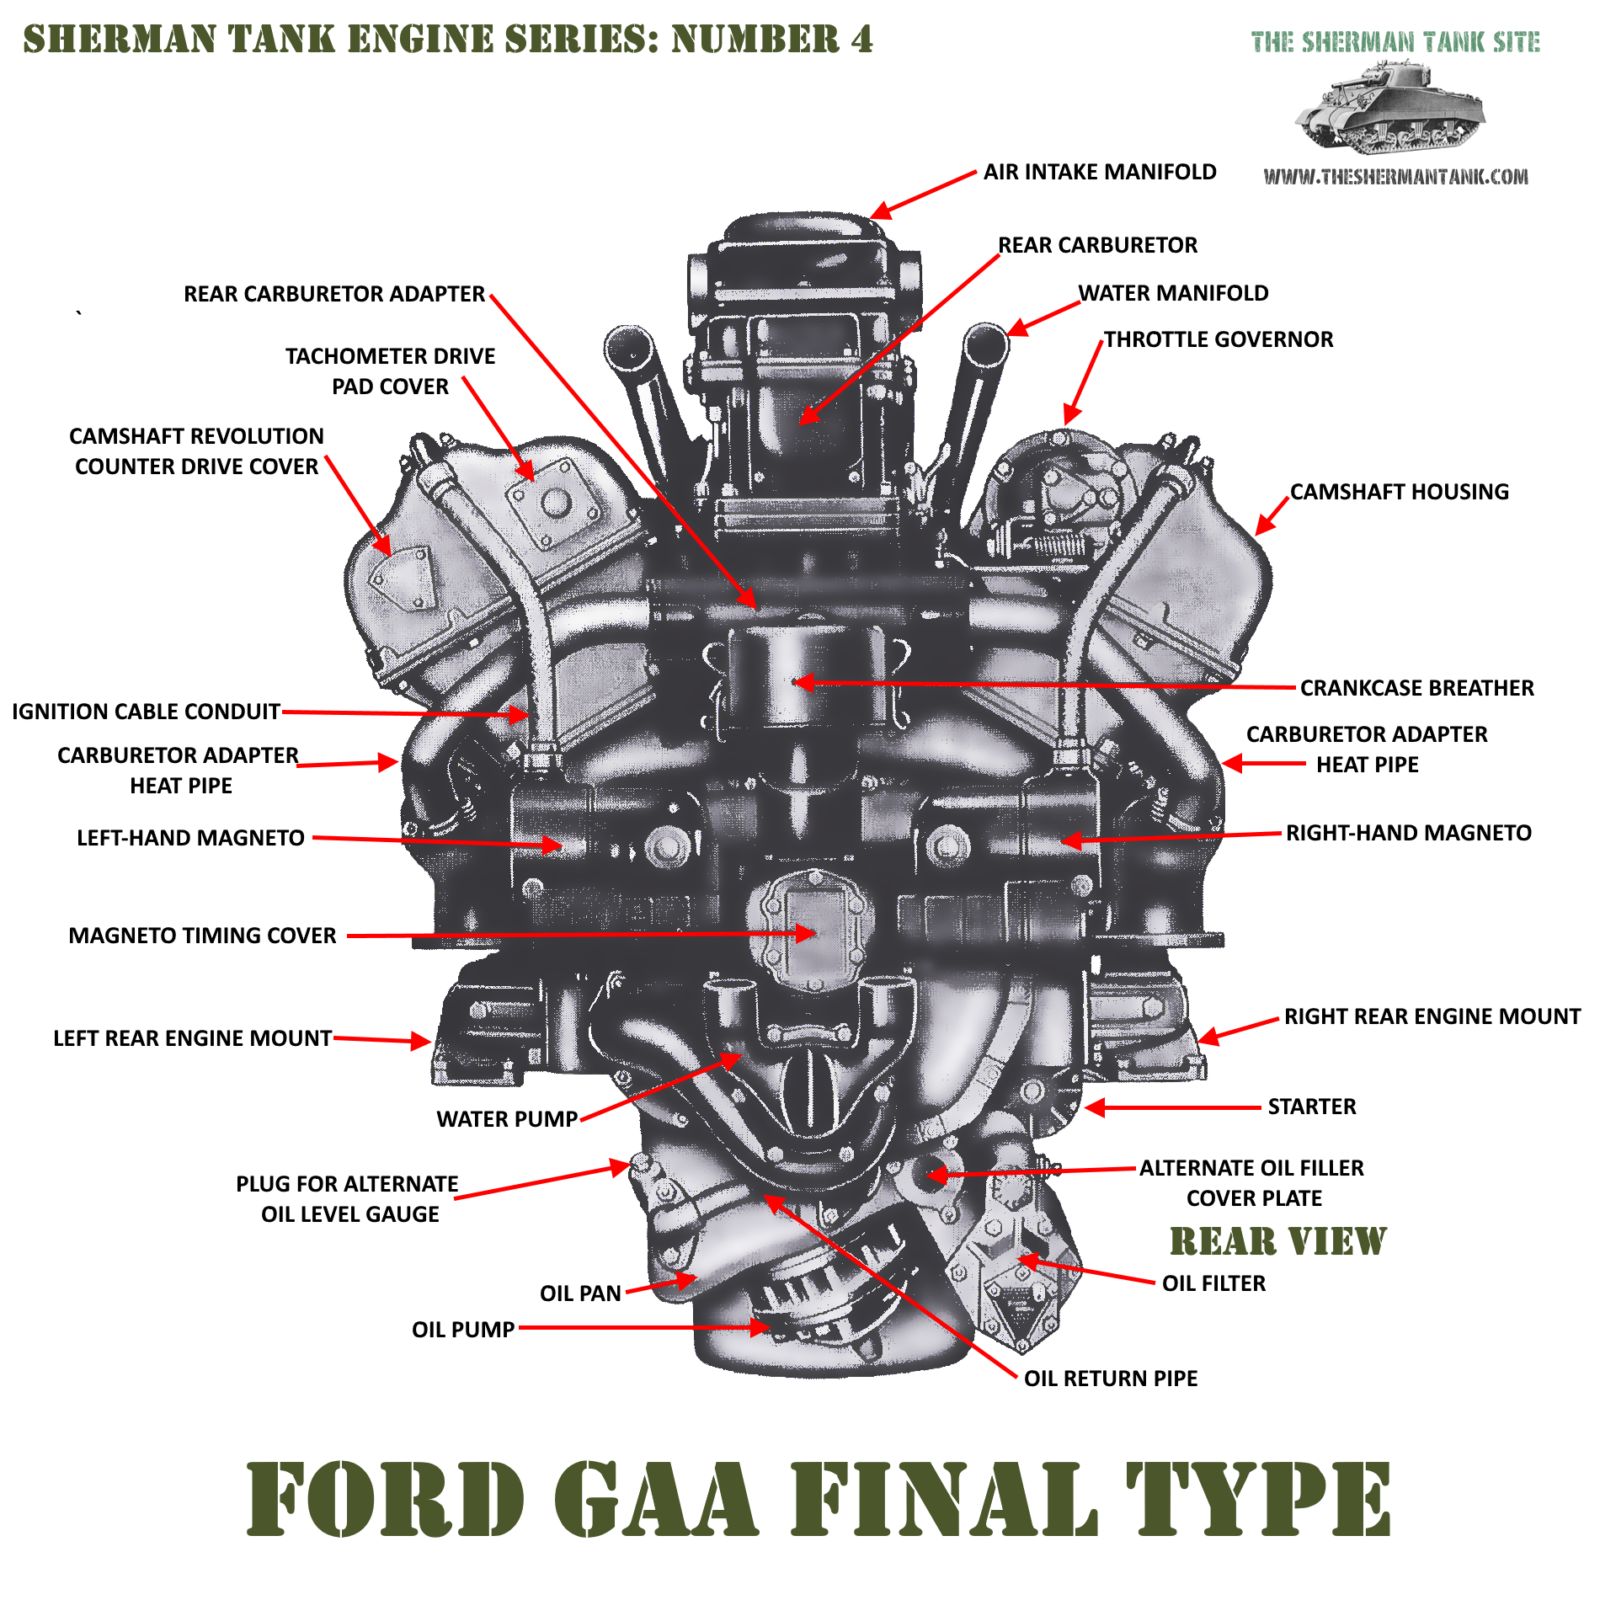 the ford gaa data page more info and technical drawings and manual rh theshermantank com